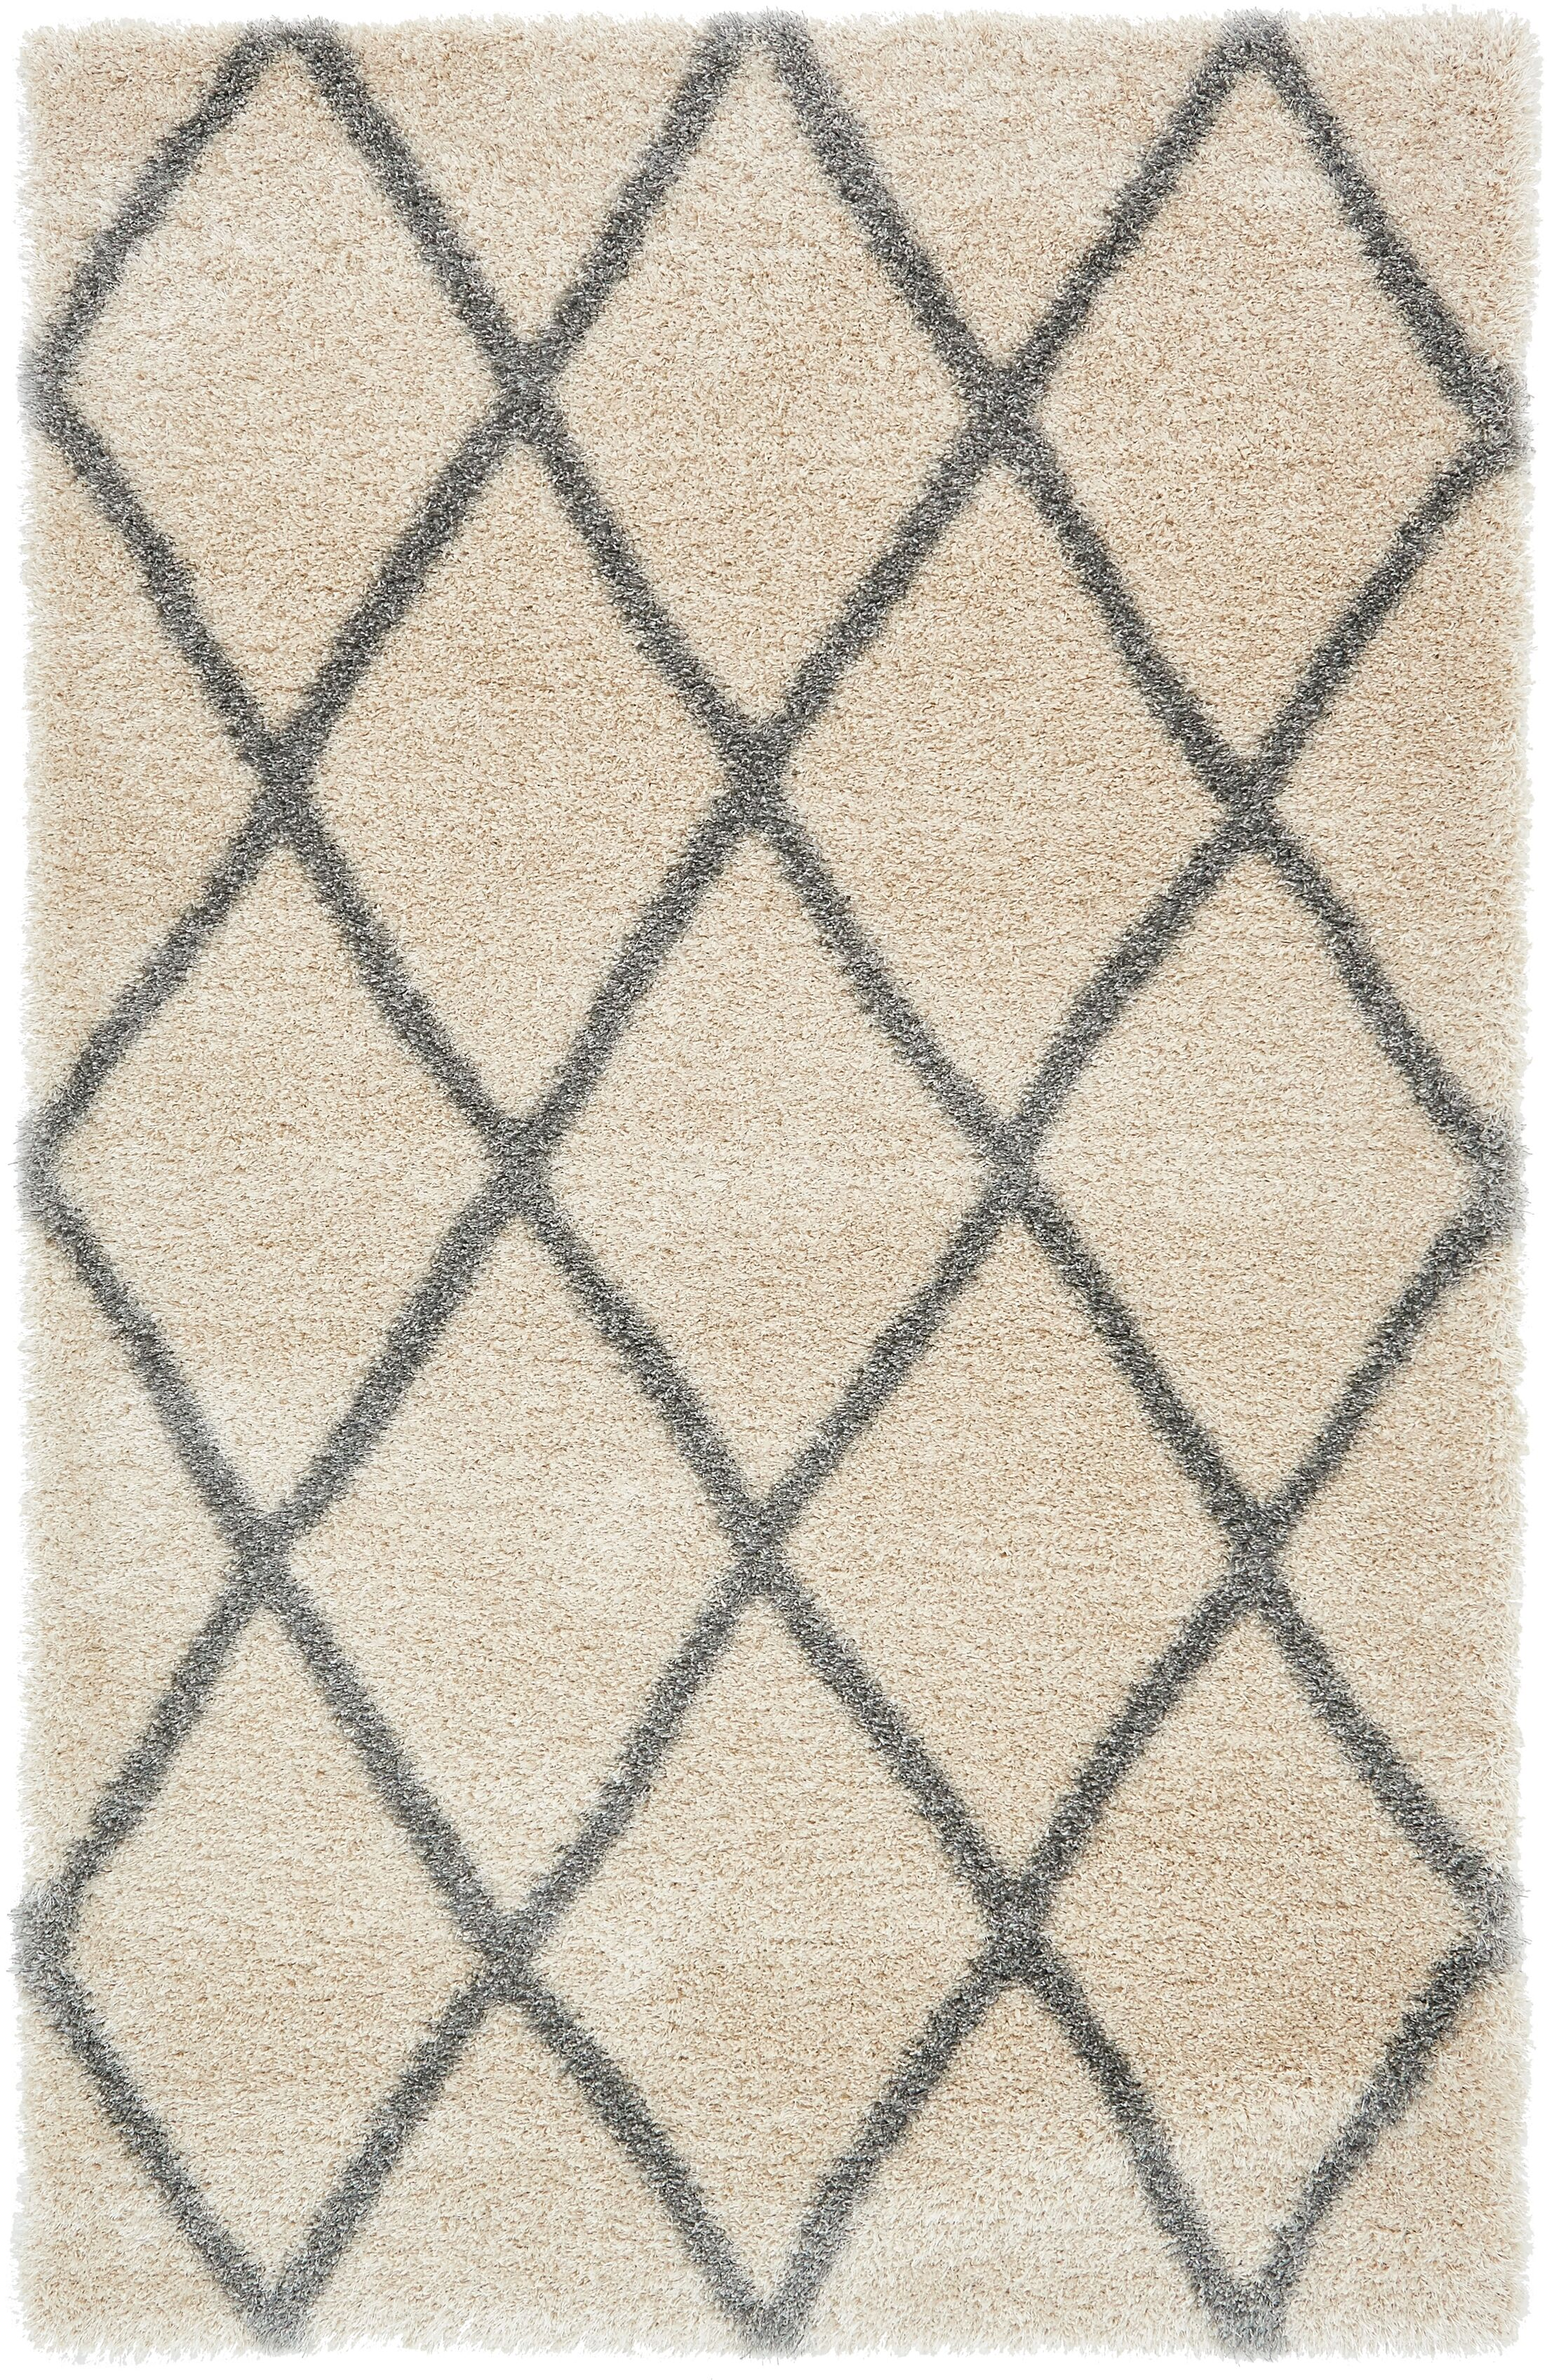 Southampton Beige Area Rug Rug Size: Rectangle 5' x 8'